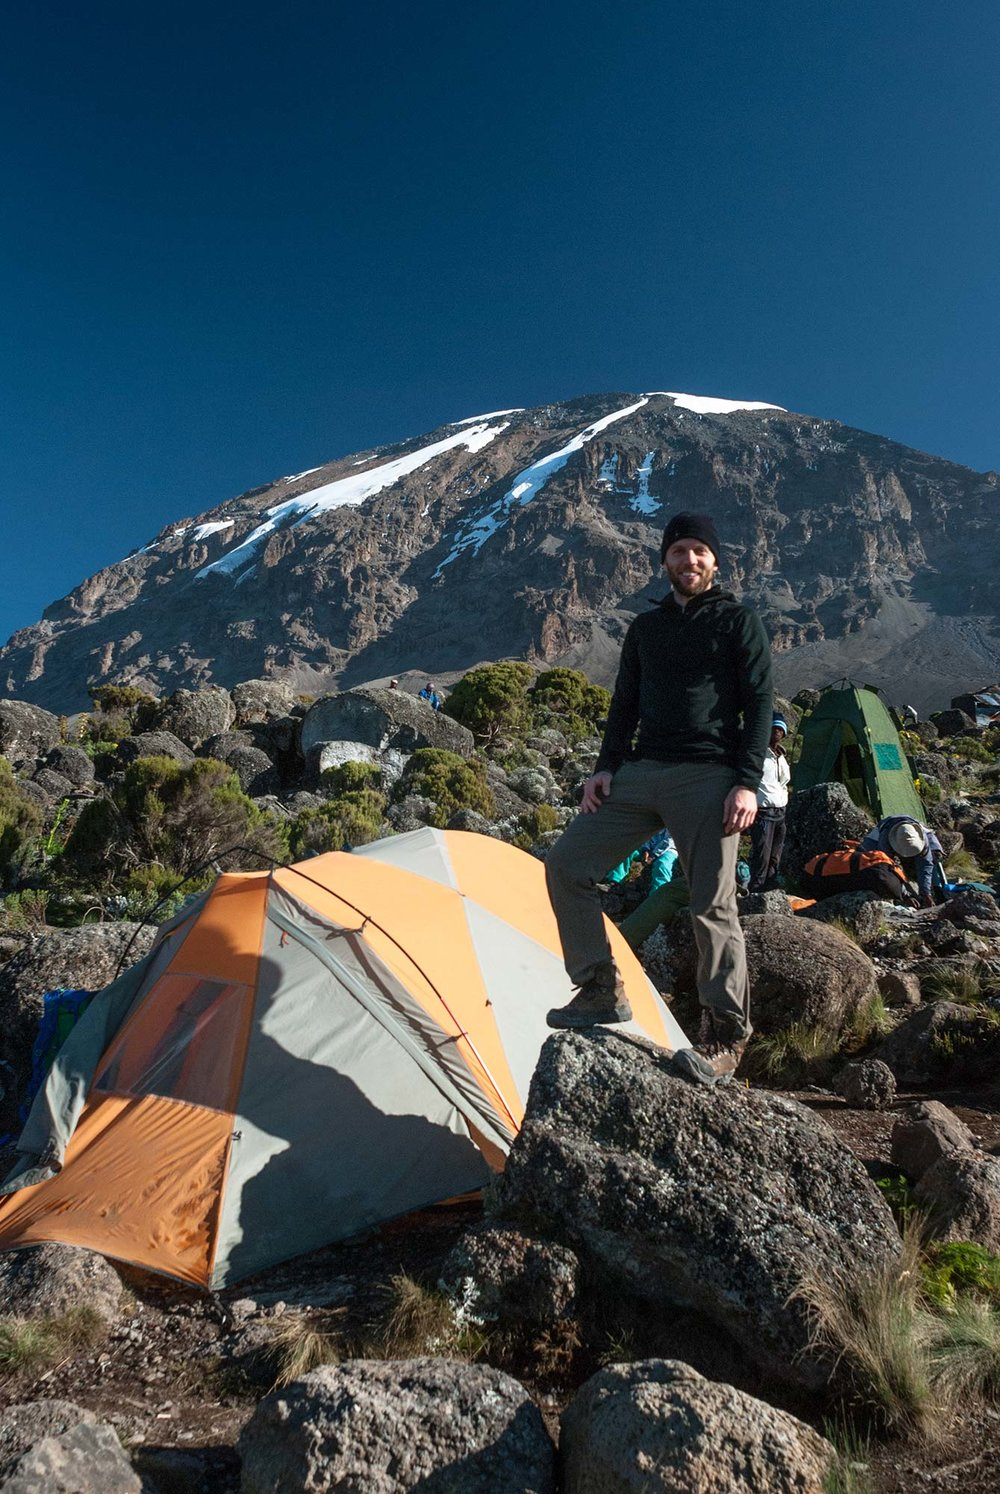 D6-13-the-mountain-and-me-karanga-camp-kilimanjaro.jpg